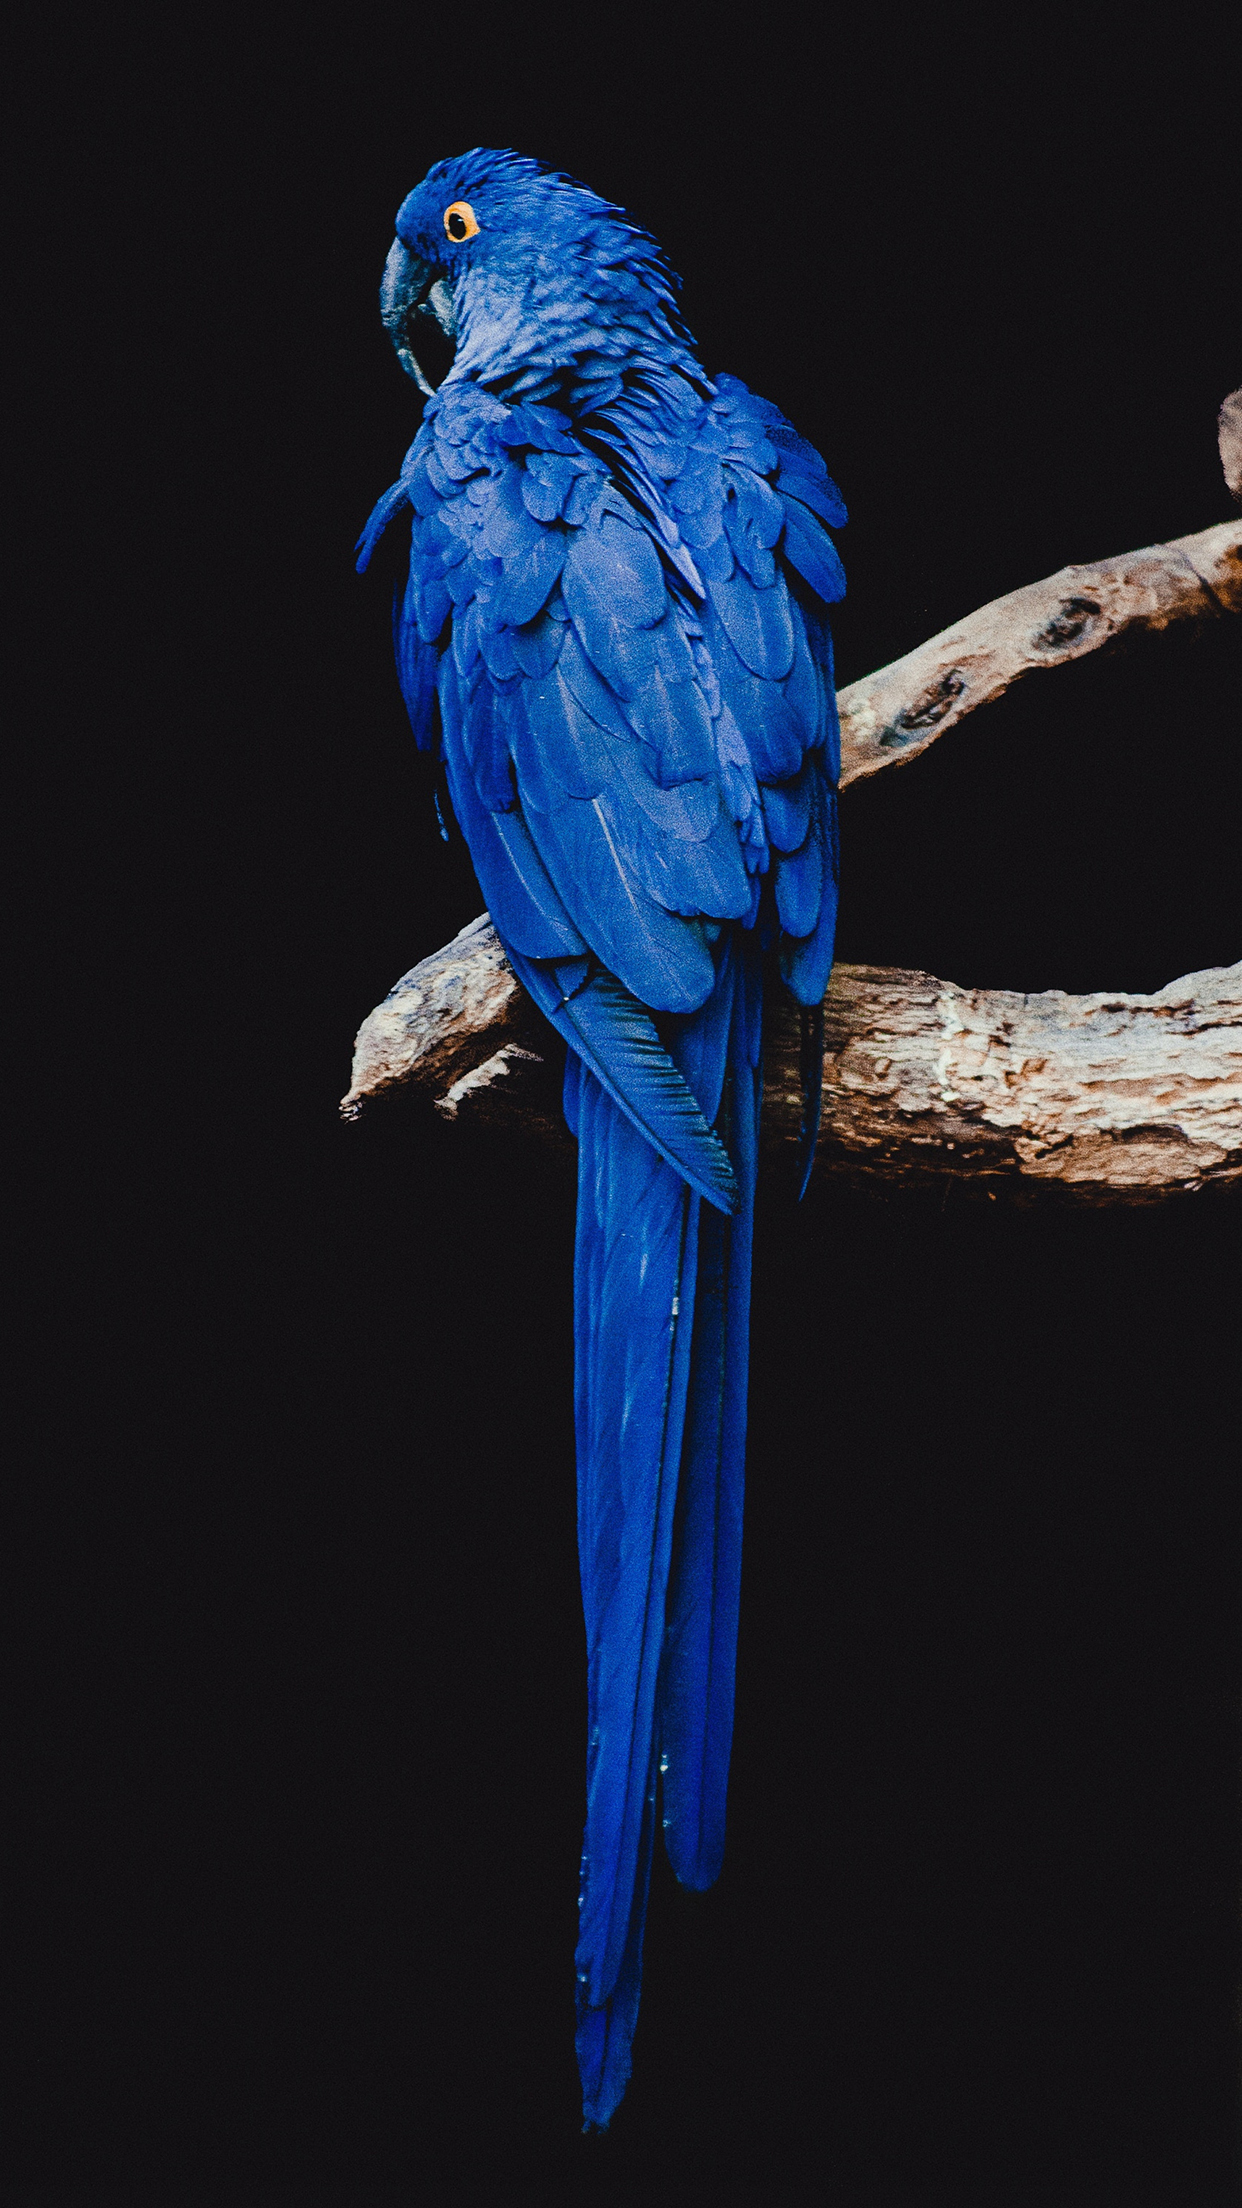 Parrot Blue 3Wallpapers iPhone Parallax 3Wallpapers : notre sélection de fonds décran du 01/10/2017